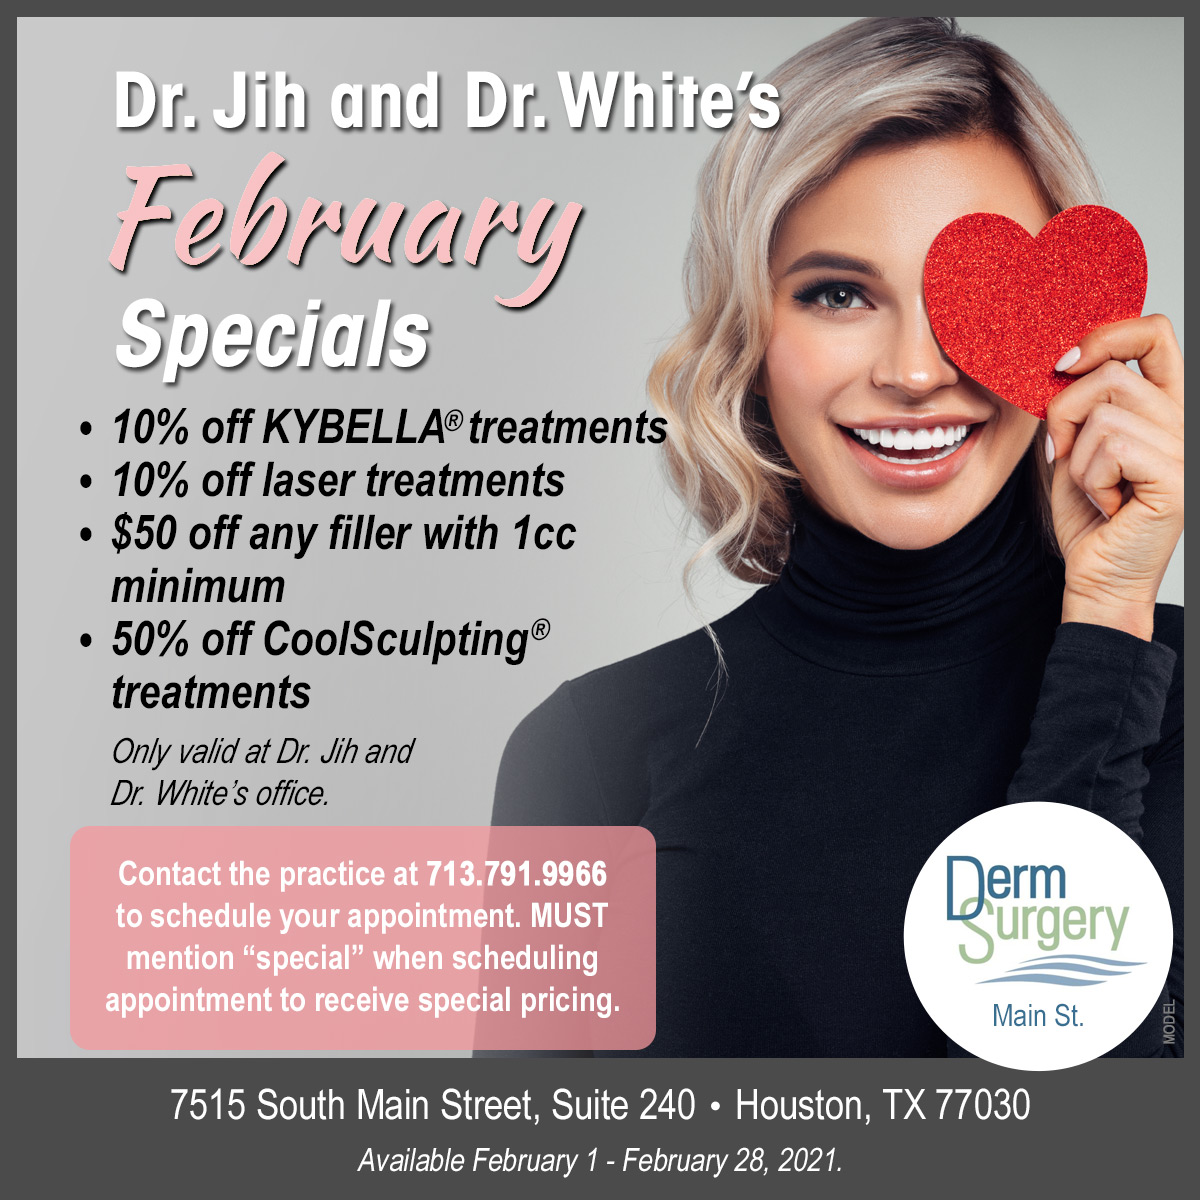 Dr. Jih and Dr. White's February Special